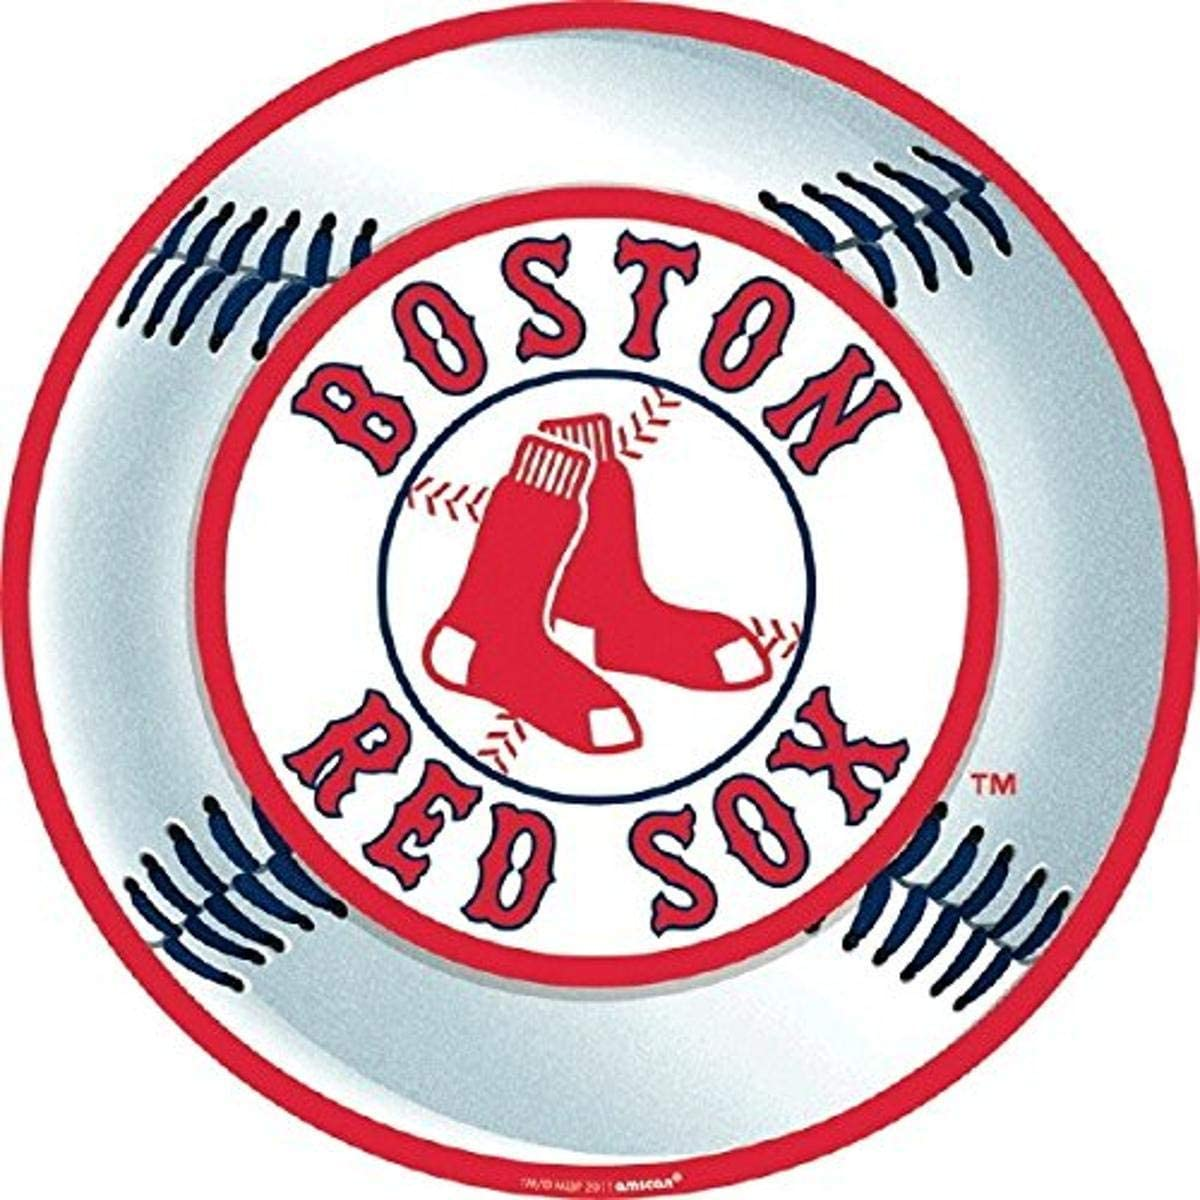 amscan 199368 Boston Red Sox Major League Baseball Collection Cutout Party Decoration 12 1 Ct, White/Red